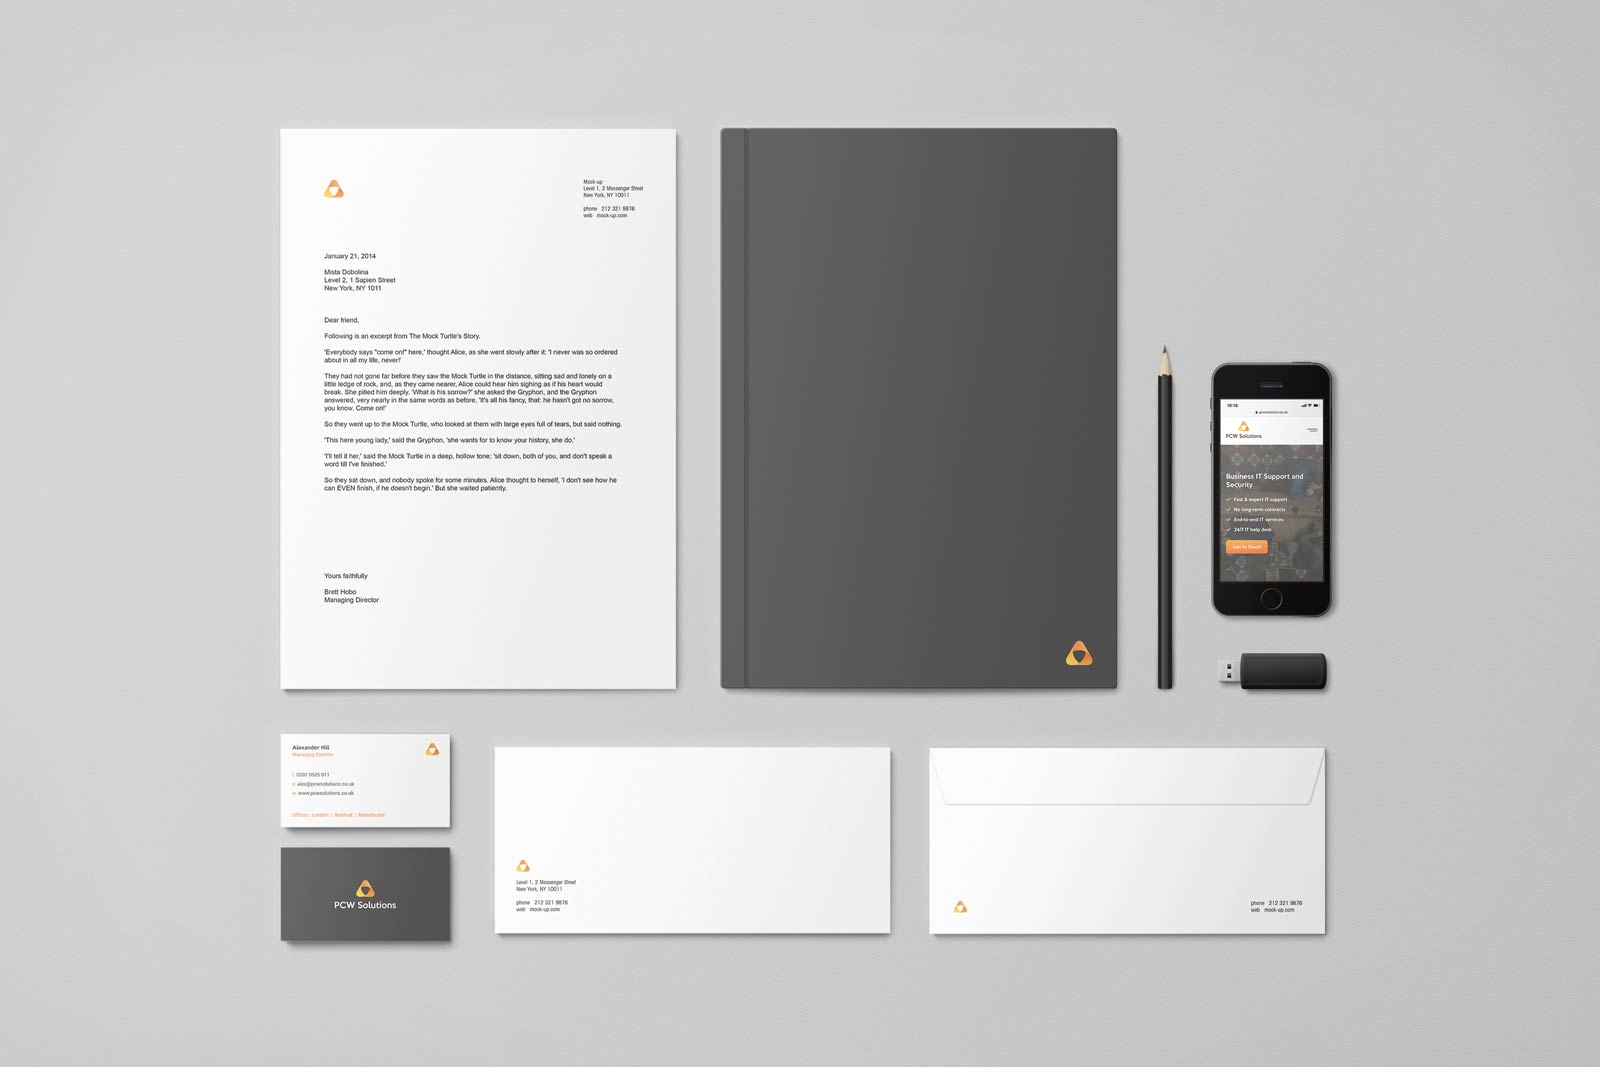 PCW Solutions business stationery brand design